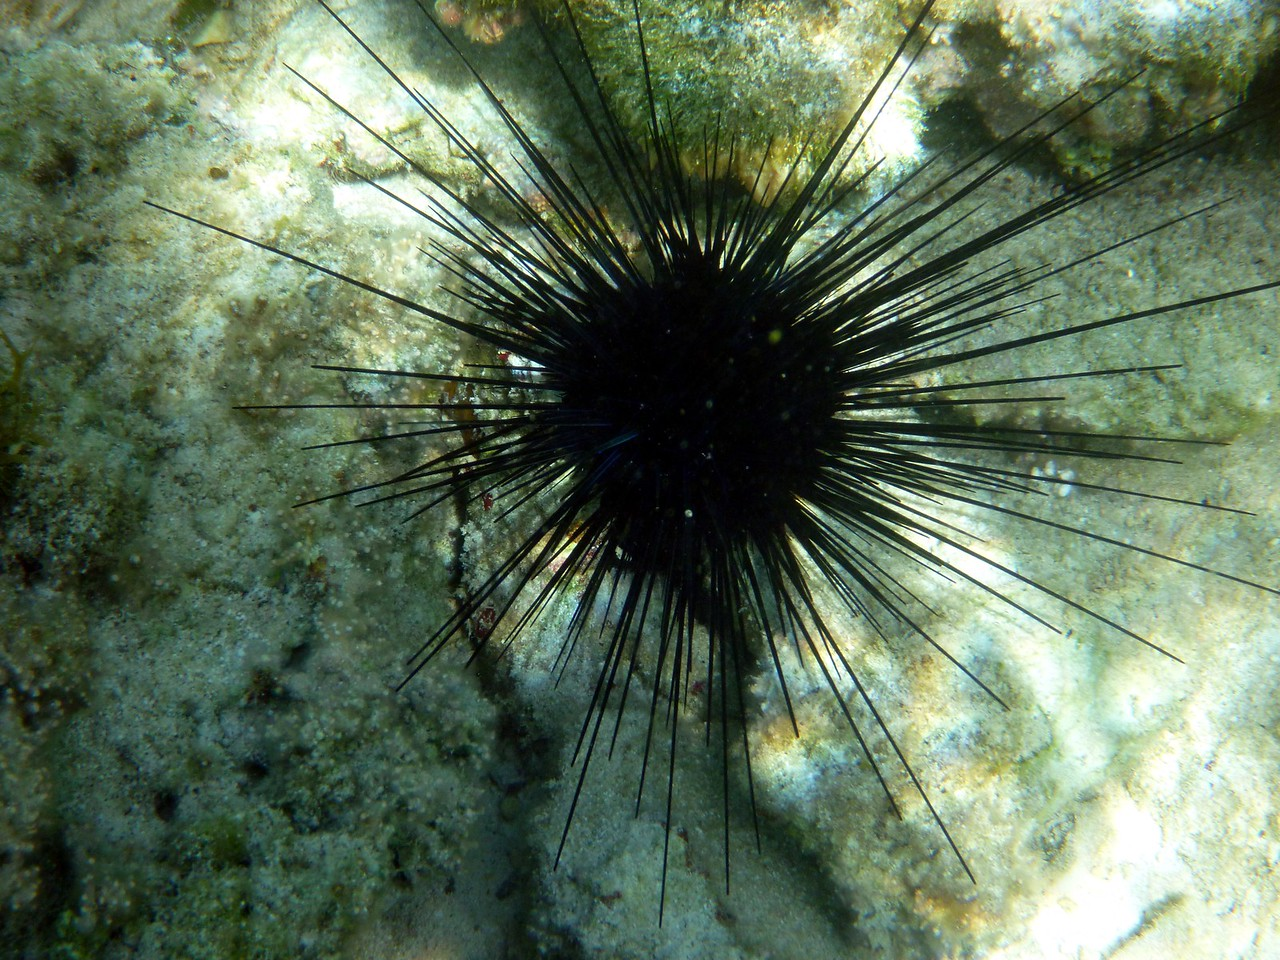 Sea urchin at snorkeling spot called 4th hole at the Cape Eleurthera Resort.